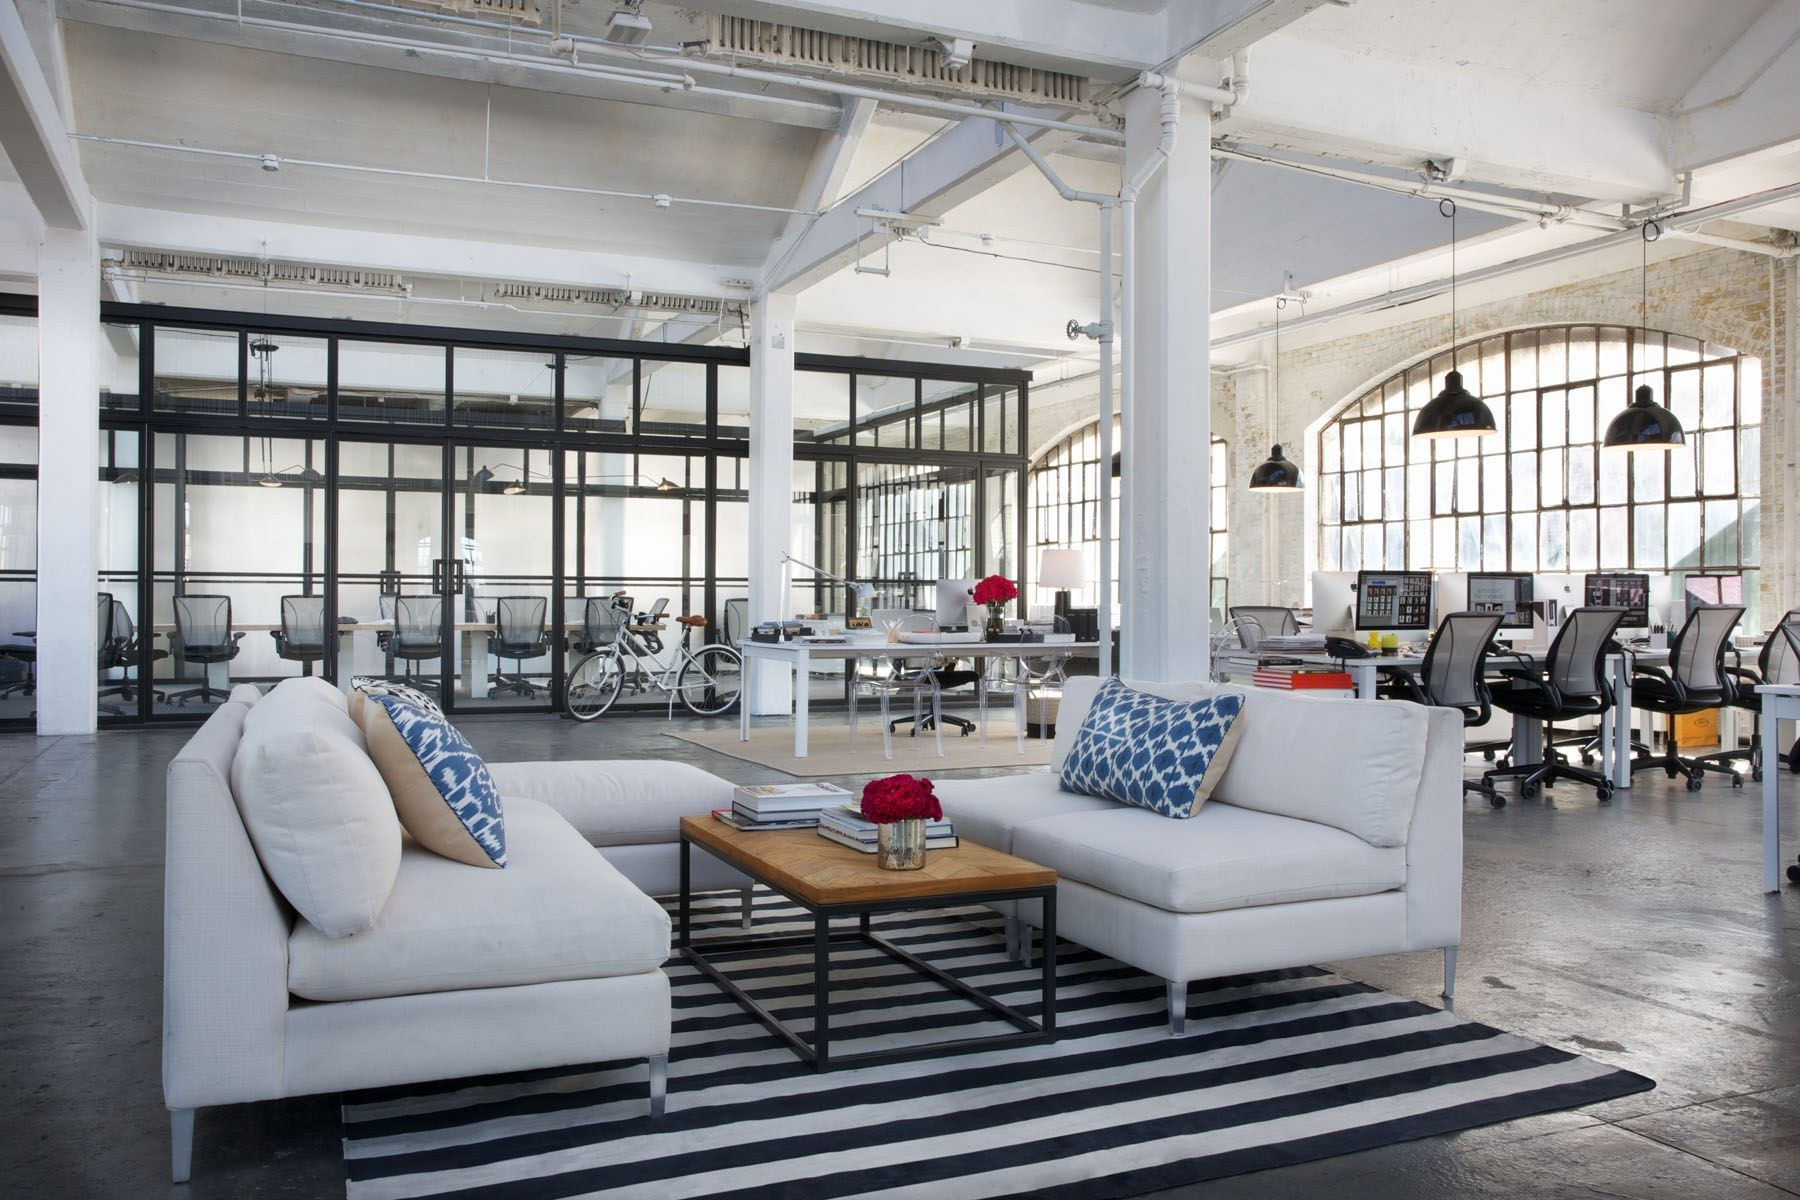 interior design internships in nyc - 1000+ images about Office on Pinterest he intern, Offices and ...